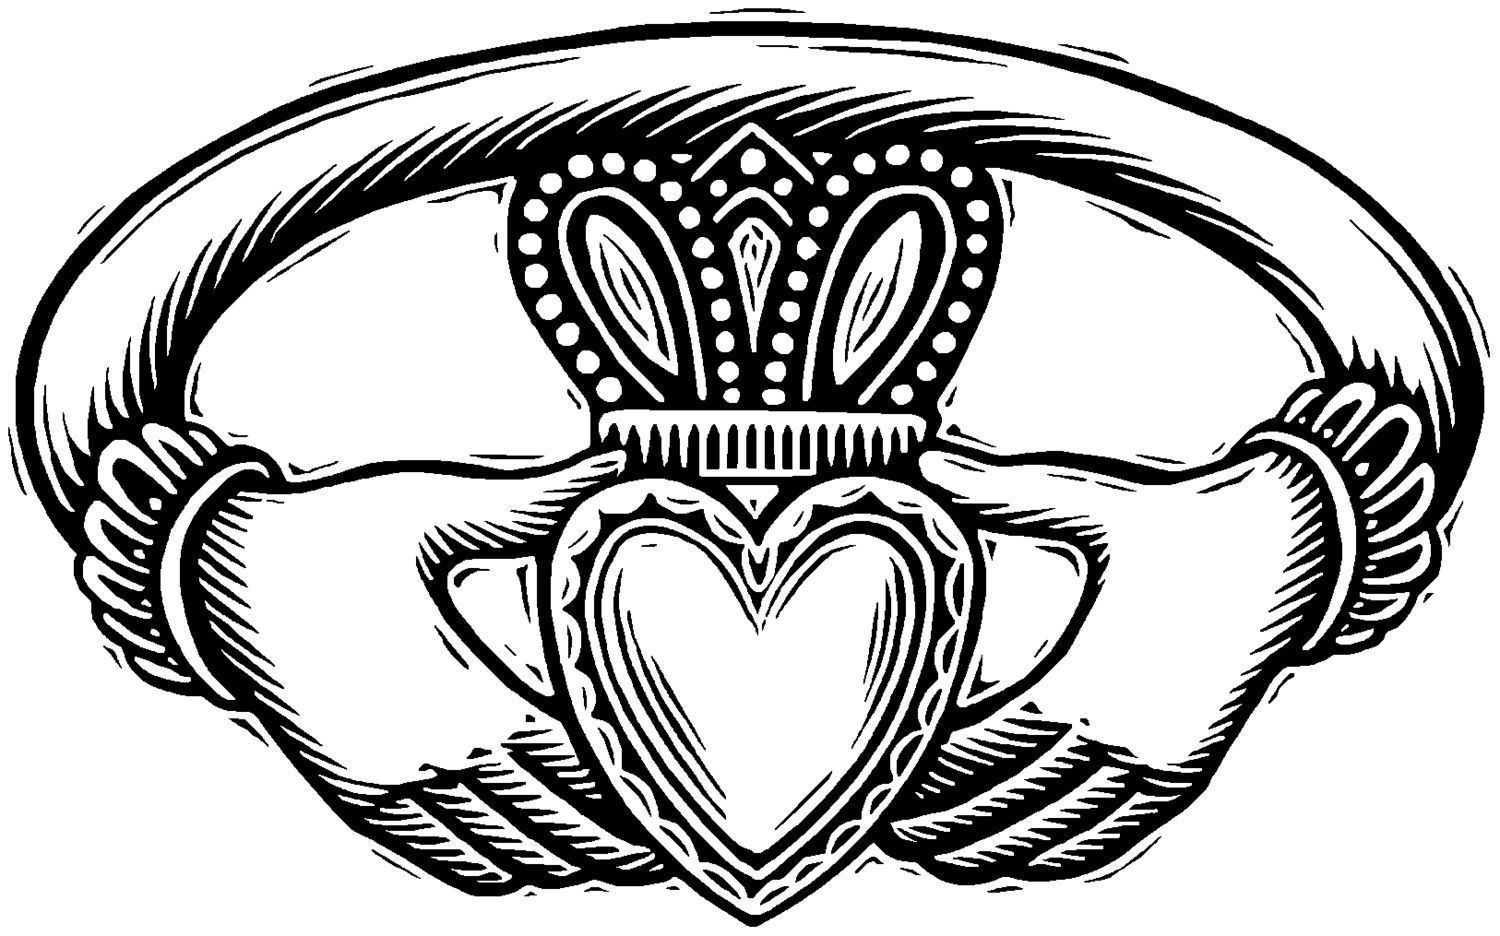 What is the meaning of the irish claddagh biocorpaavc Gallery